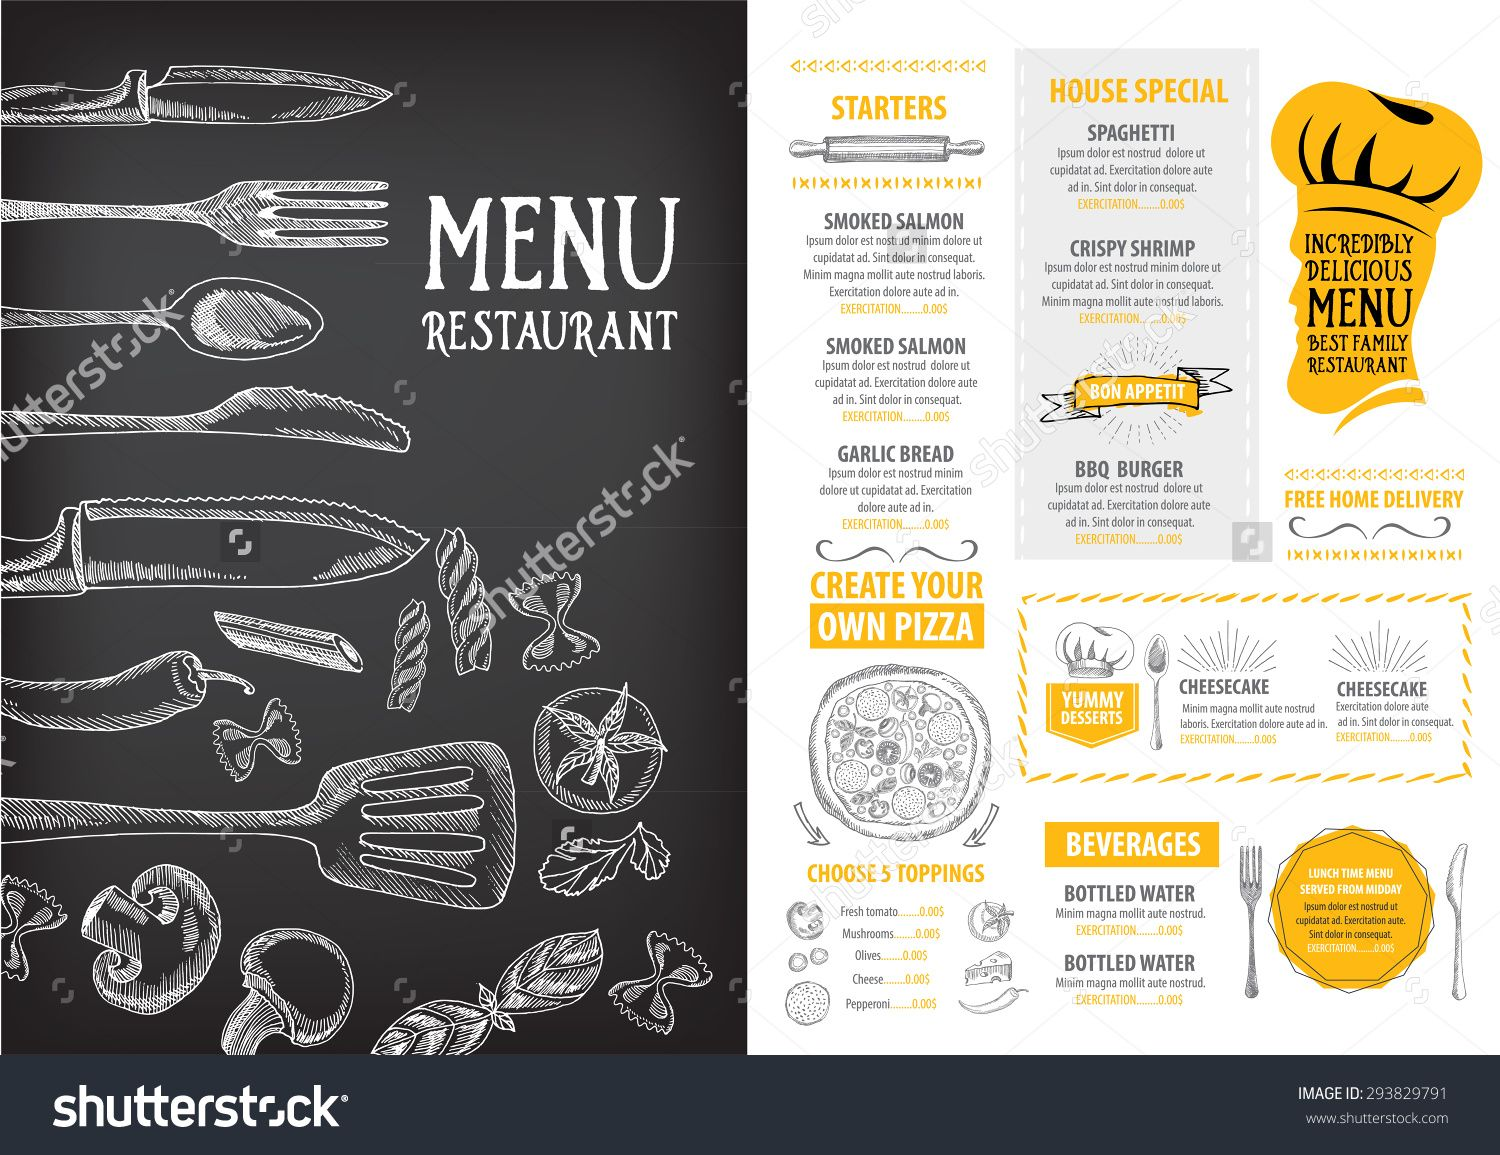 Image result for best menu designs design pinterest